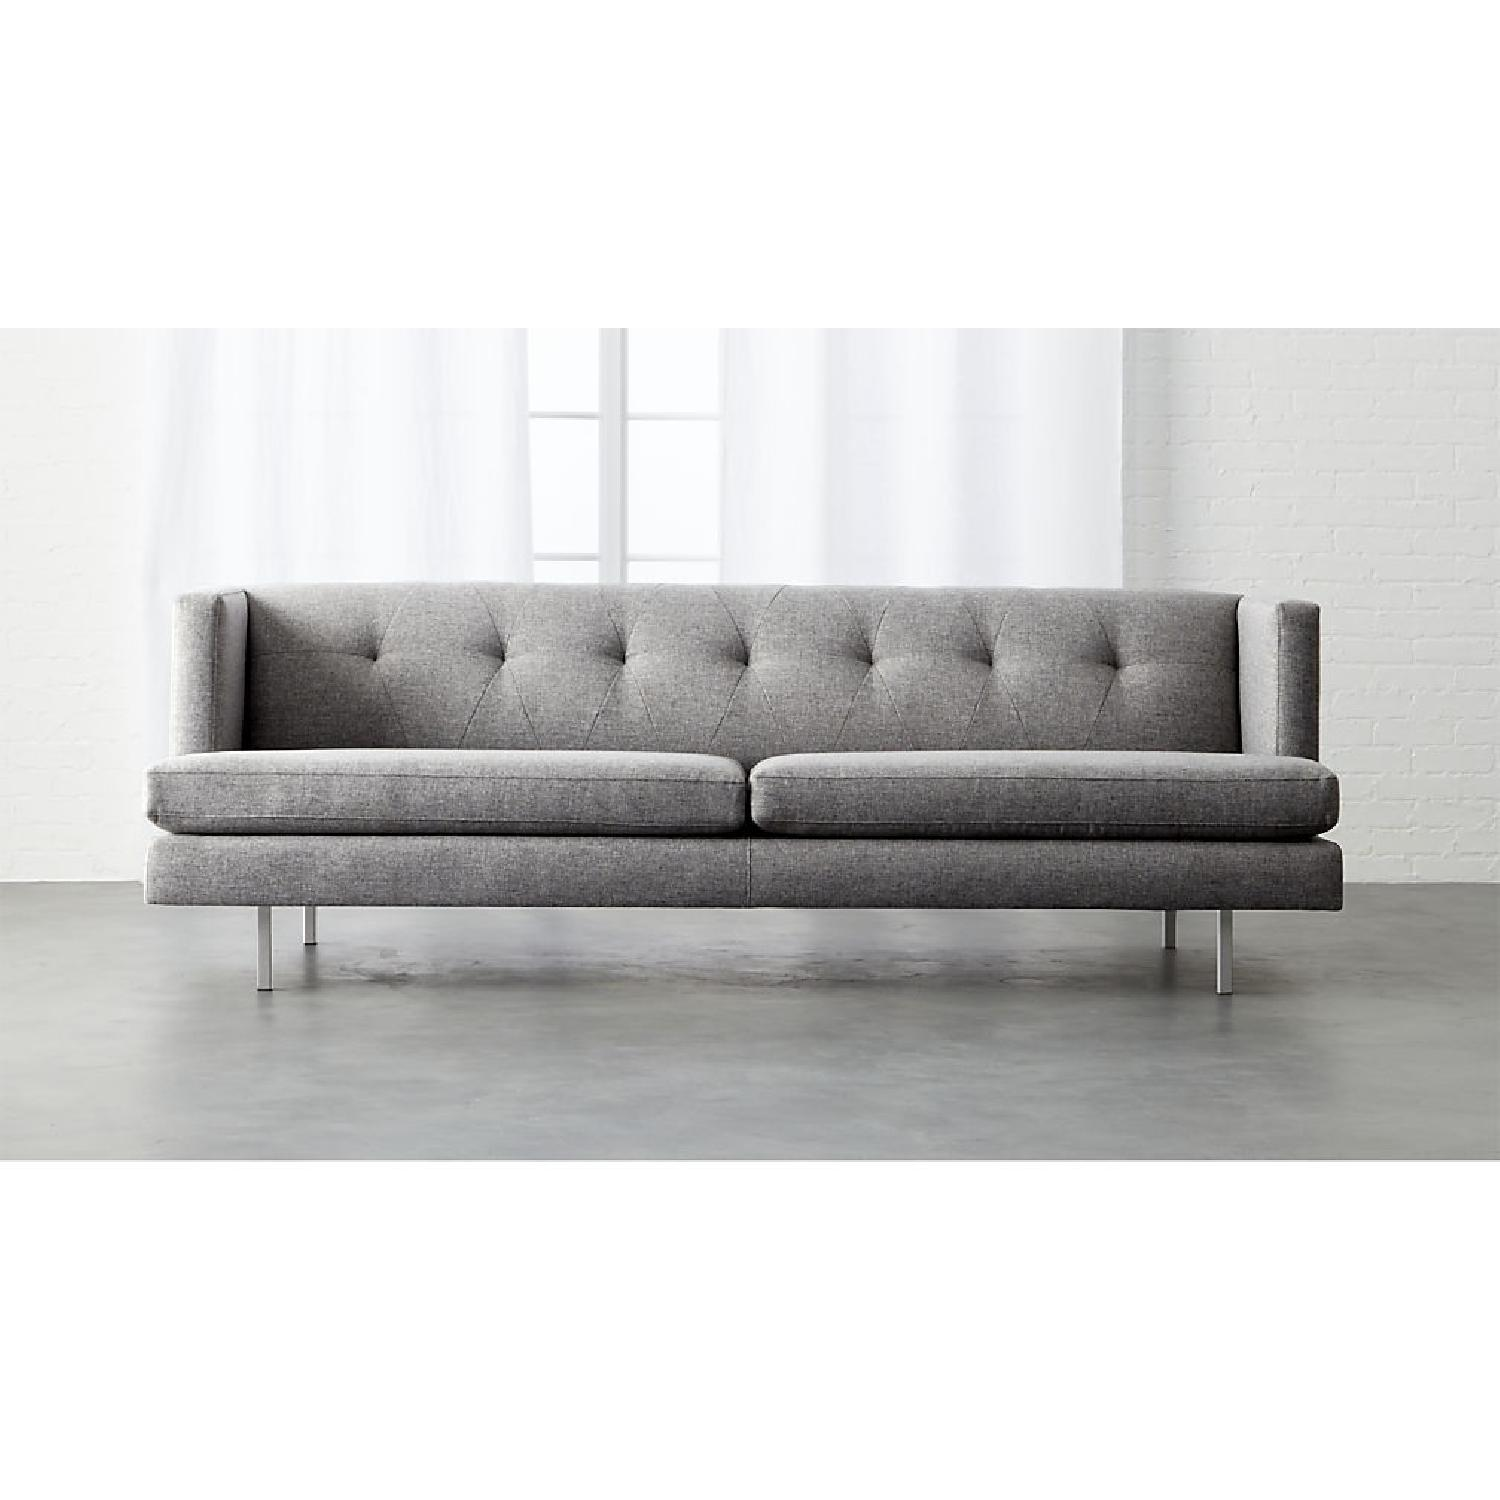 CB2 Central Grey Sofa-0